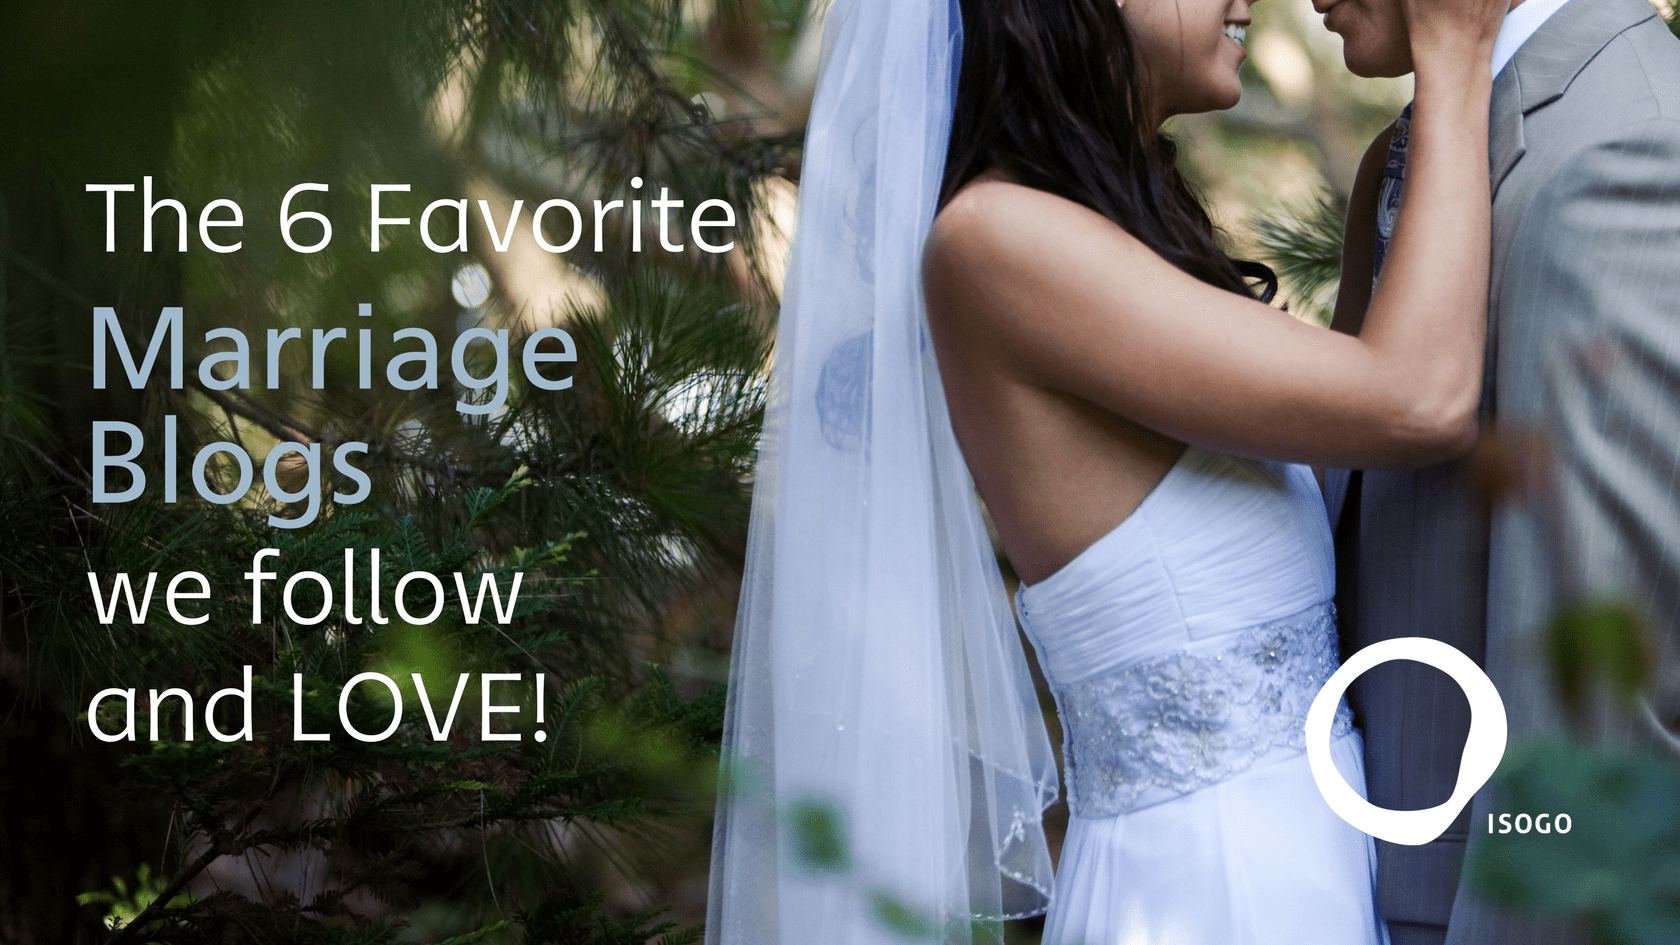 The 6 Favorite Marriage Blogs we follow and LOVE!